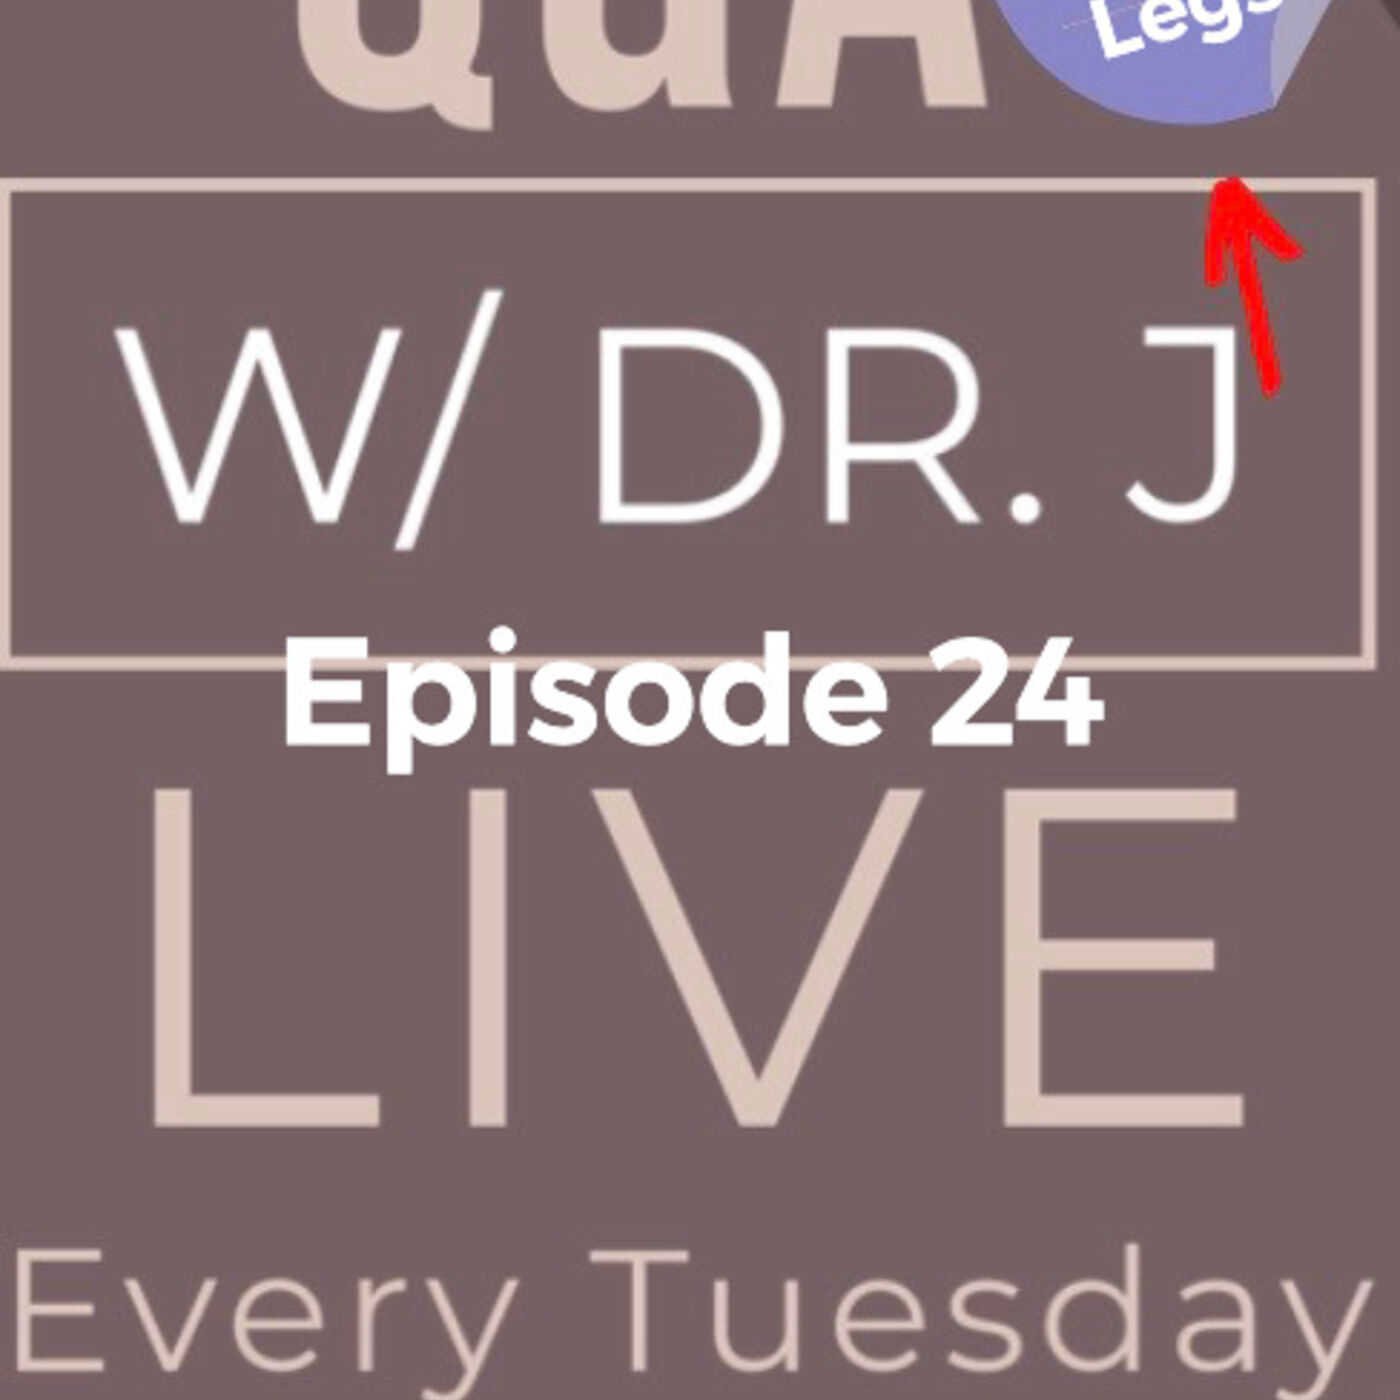 EP 24 Q&A w/ Dr J - All about legs with Dr. Jeneby